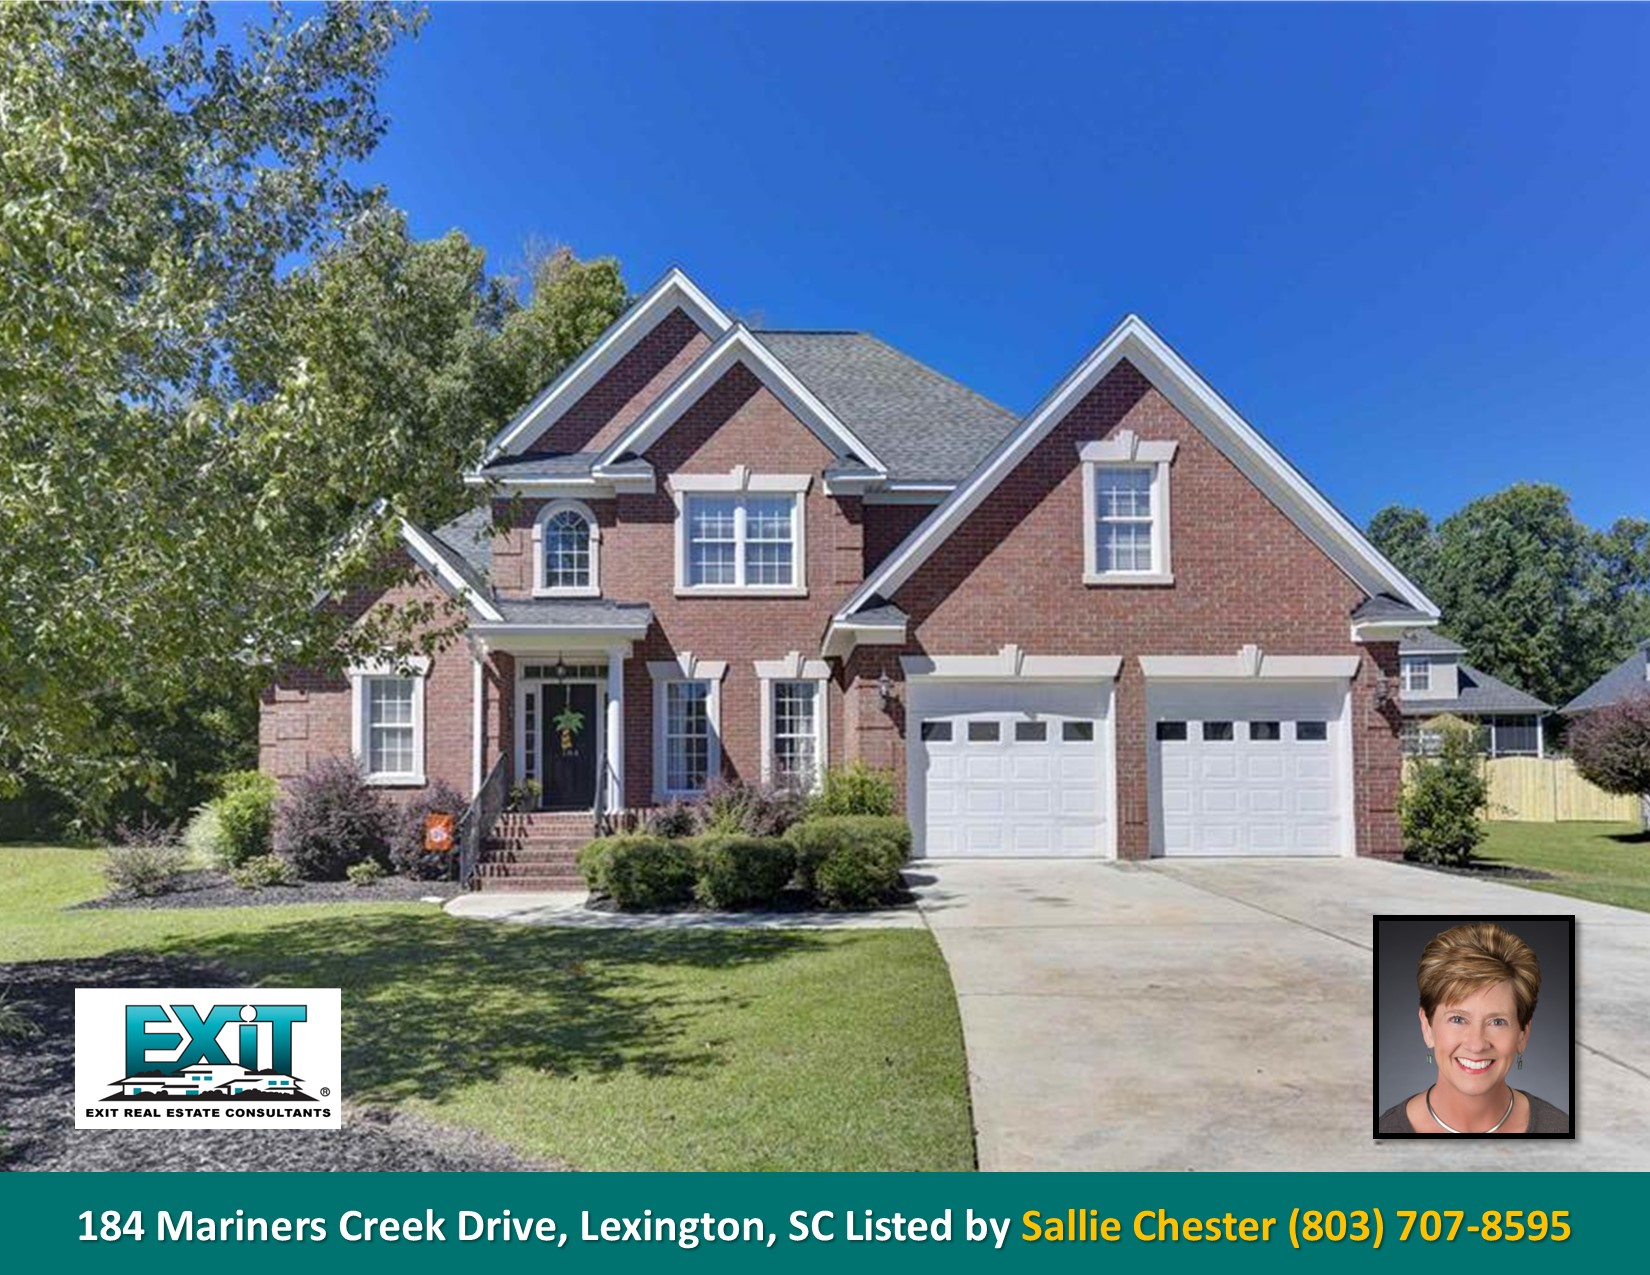 Just listed in Mariners Creek - Lexington